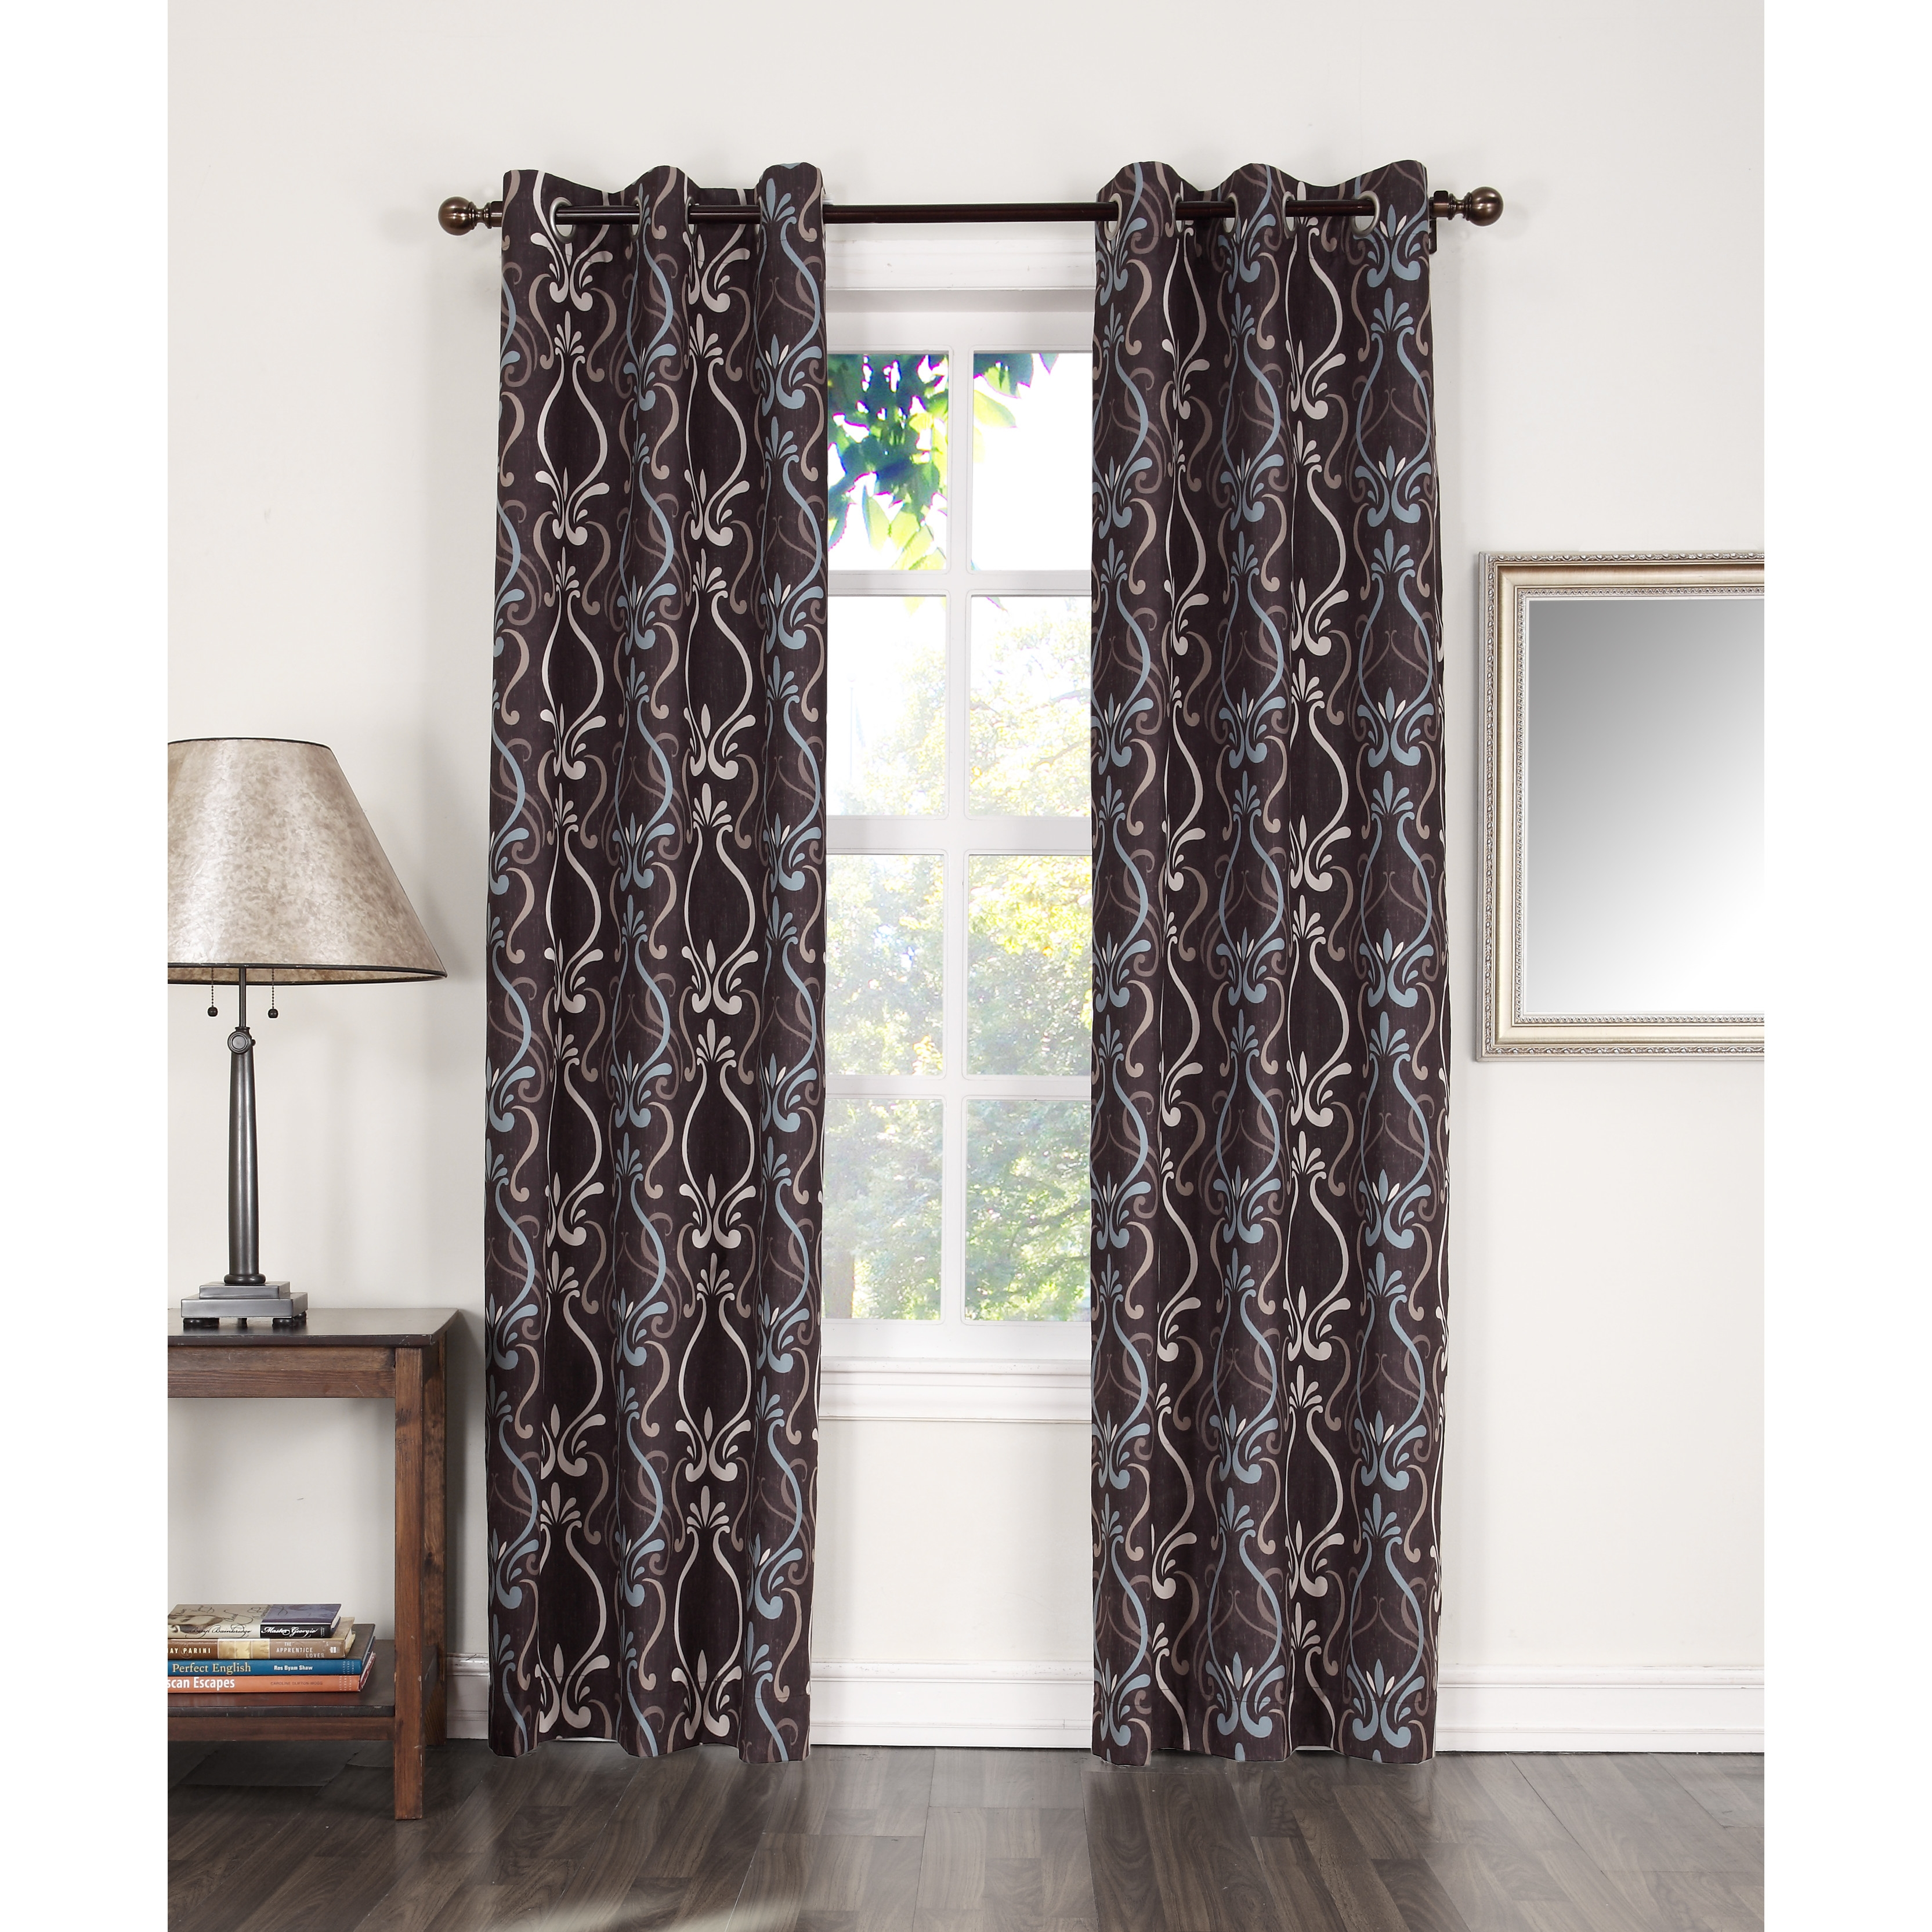 Curtains And Drapes Thermal Decorate Our Home With Beautiful For Thermal Lined Drapes (Image 6 of 15)